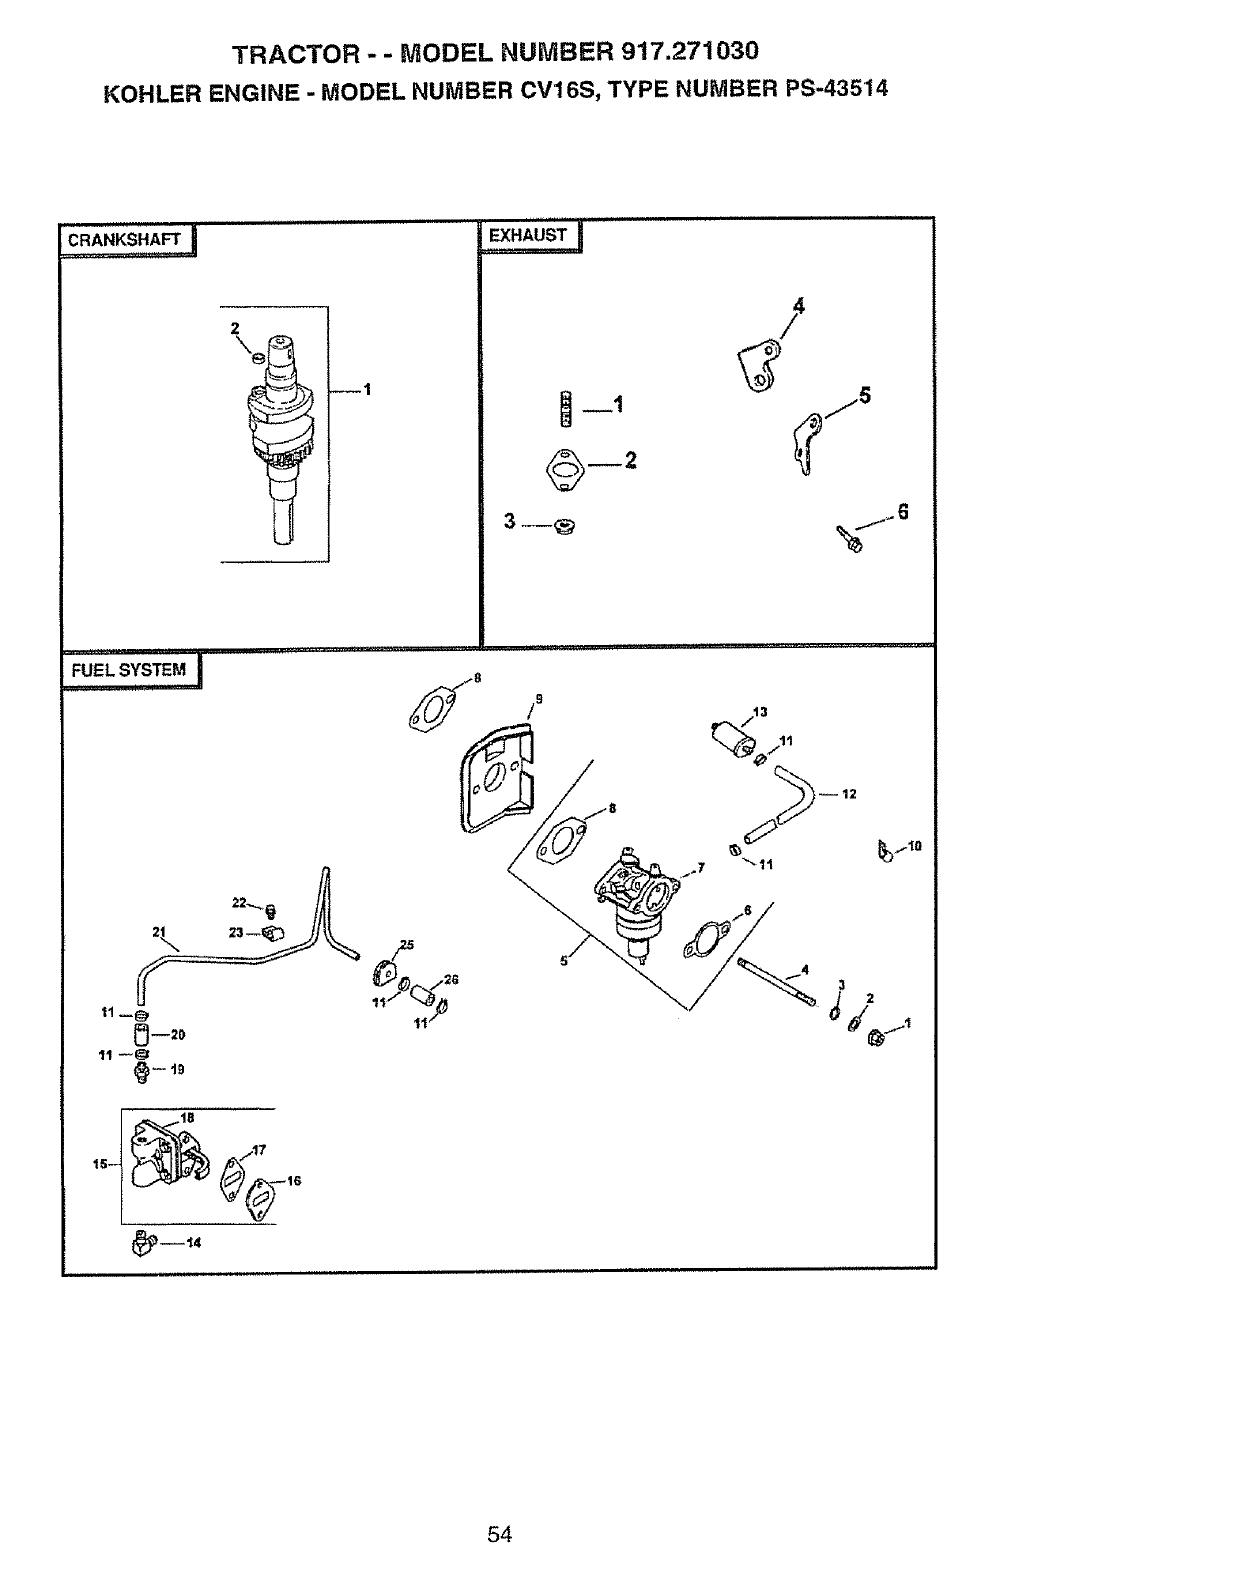 Page 54 of Craftsman Lawn Mower 917.27103 User Guide